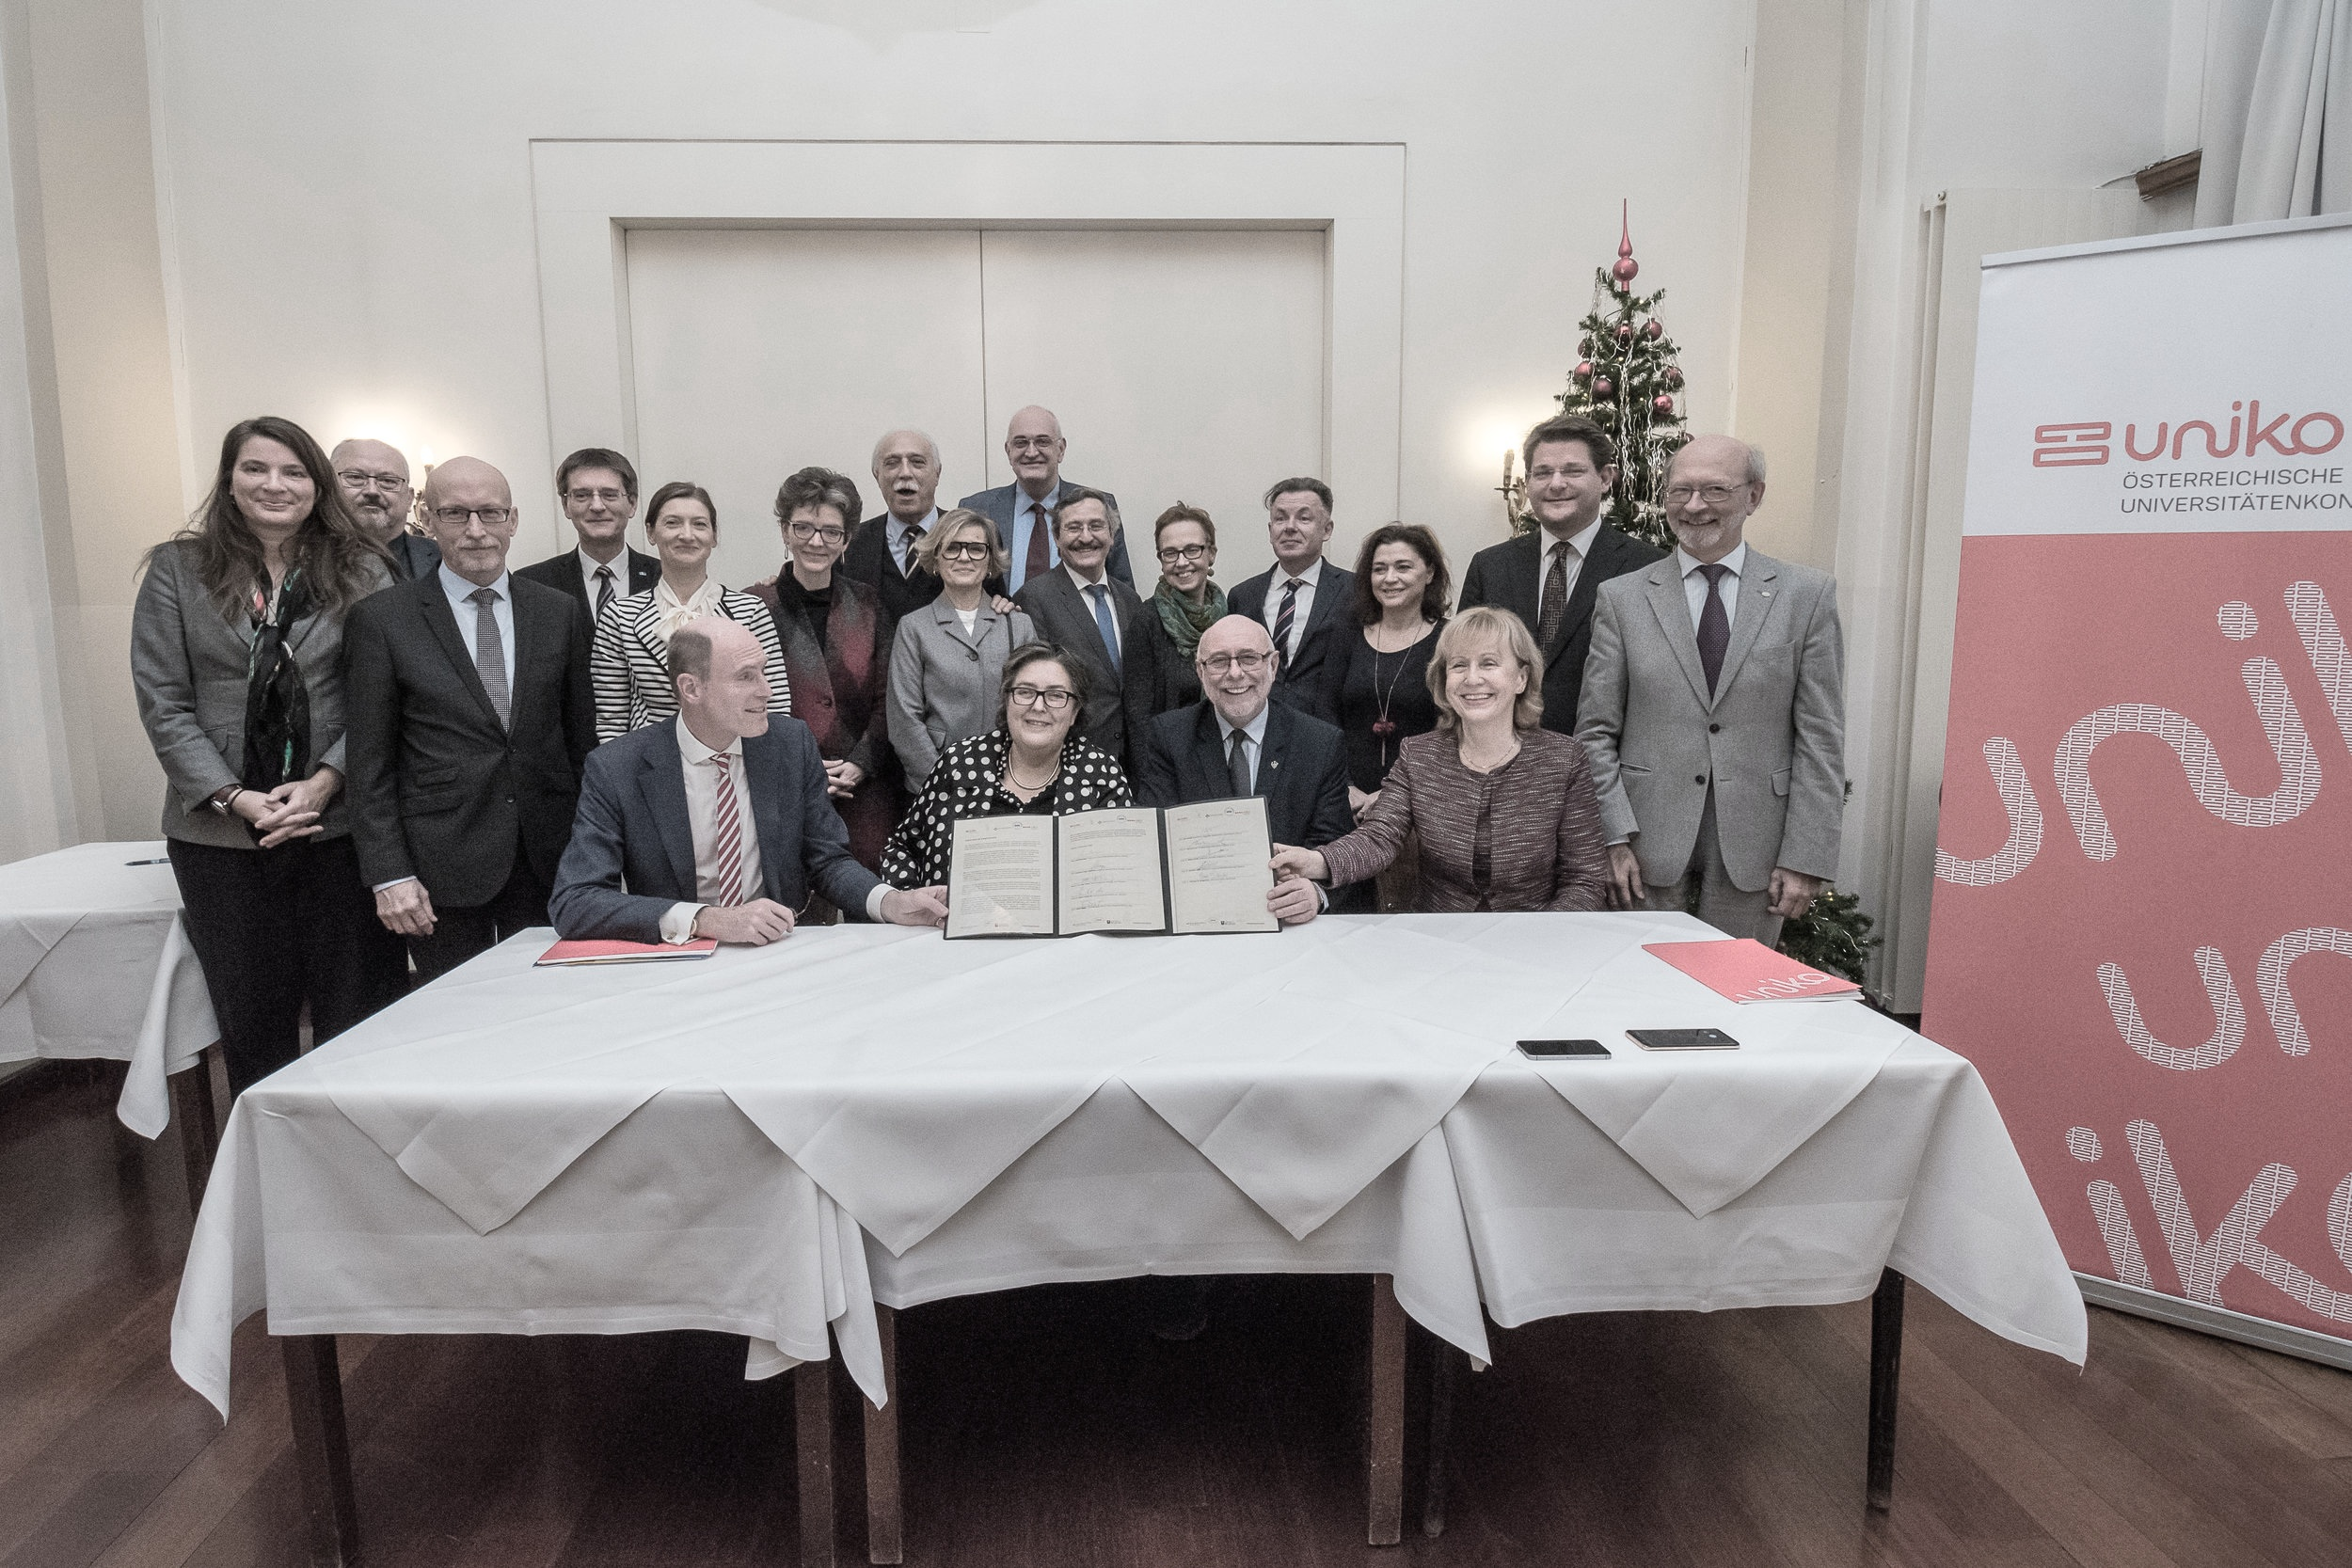 Vienna Statement - Vienna, 13th of December 2018